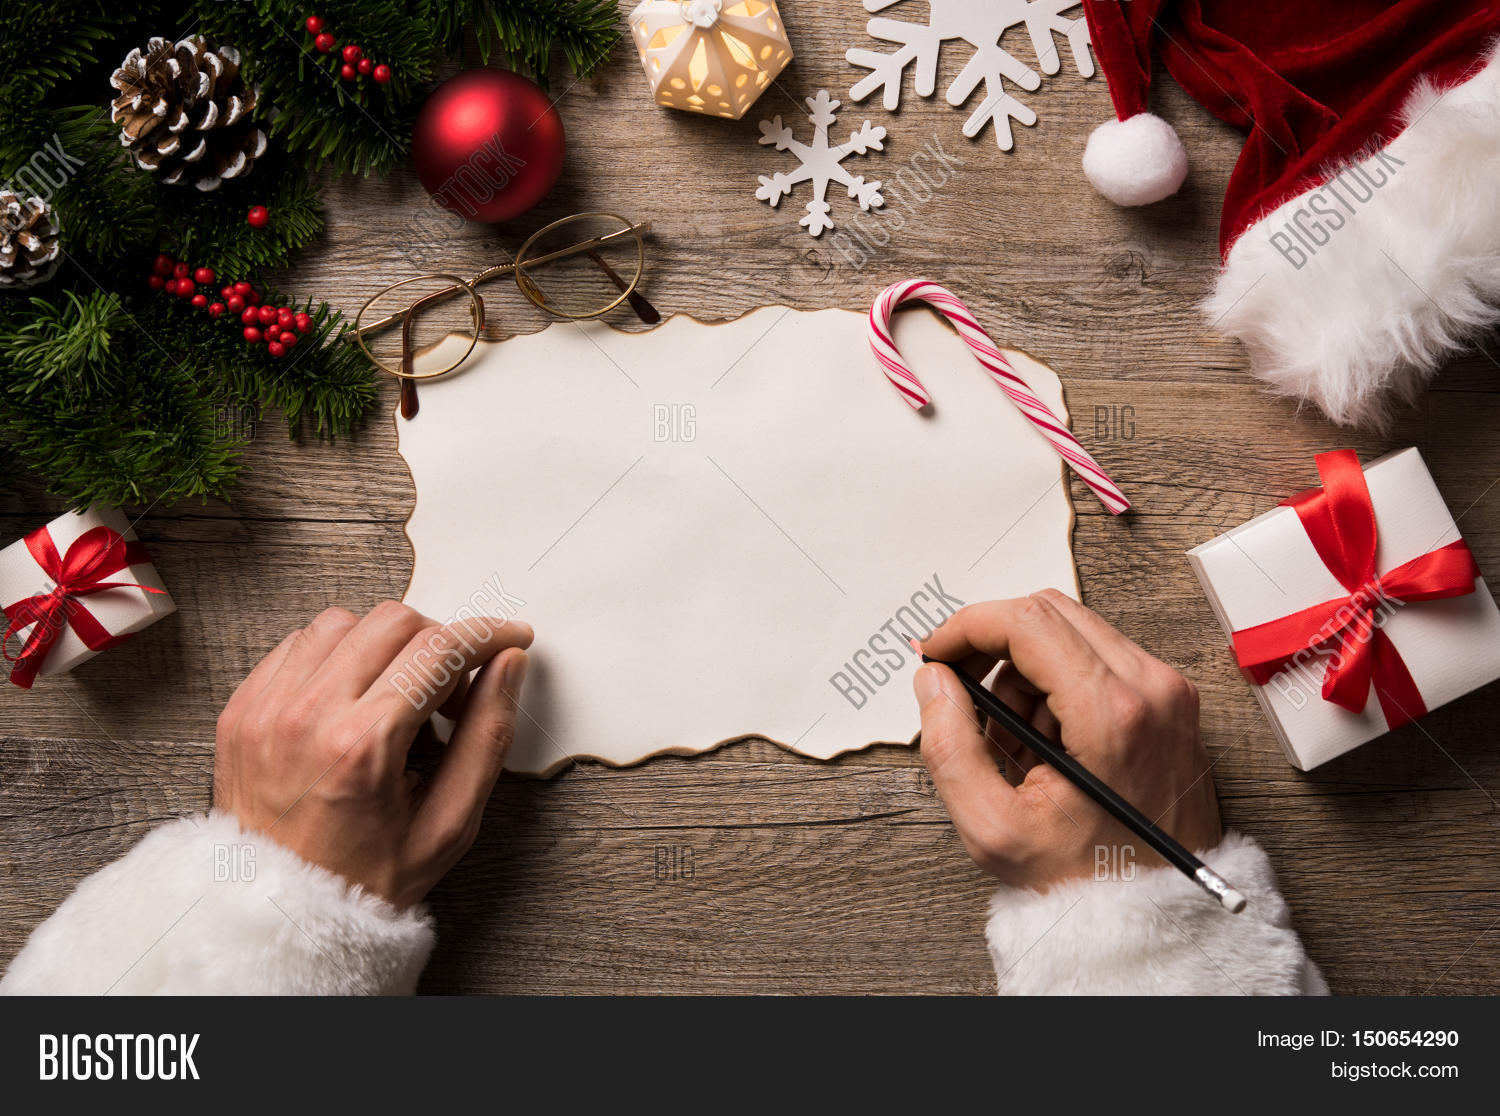 Top View Christmas Image  Photo Free Trial  Bigstock